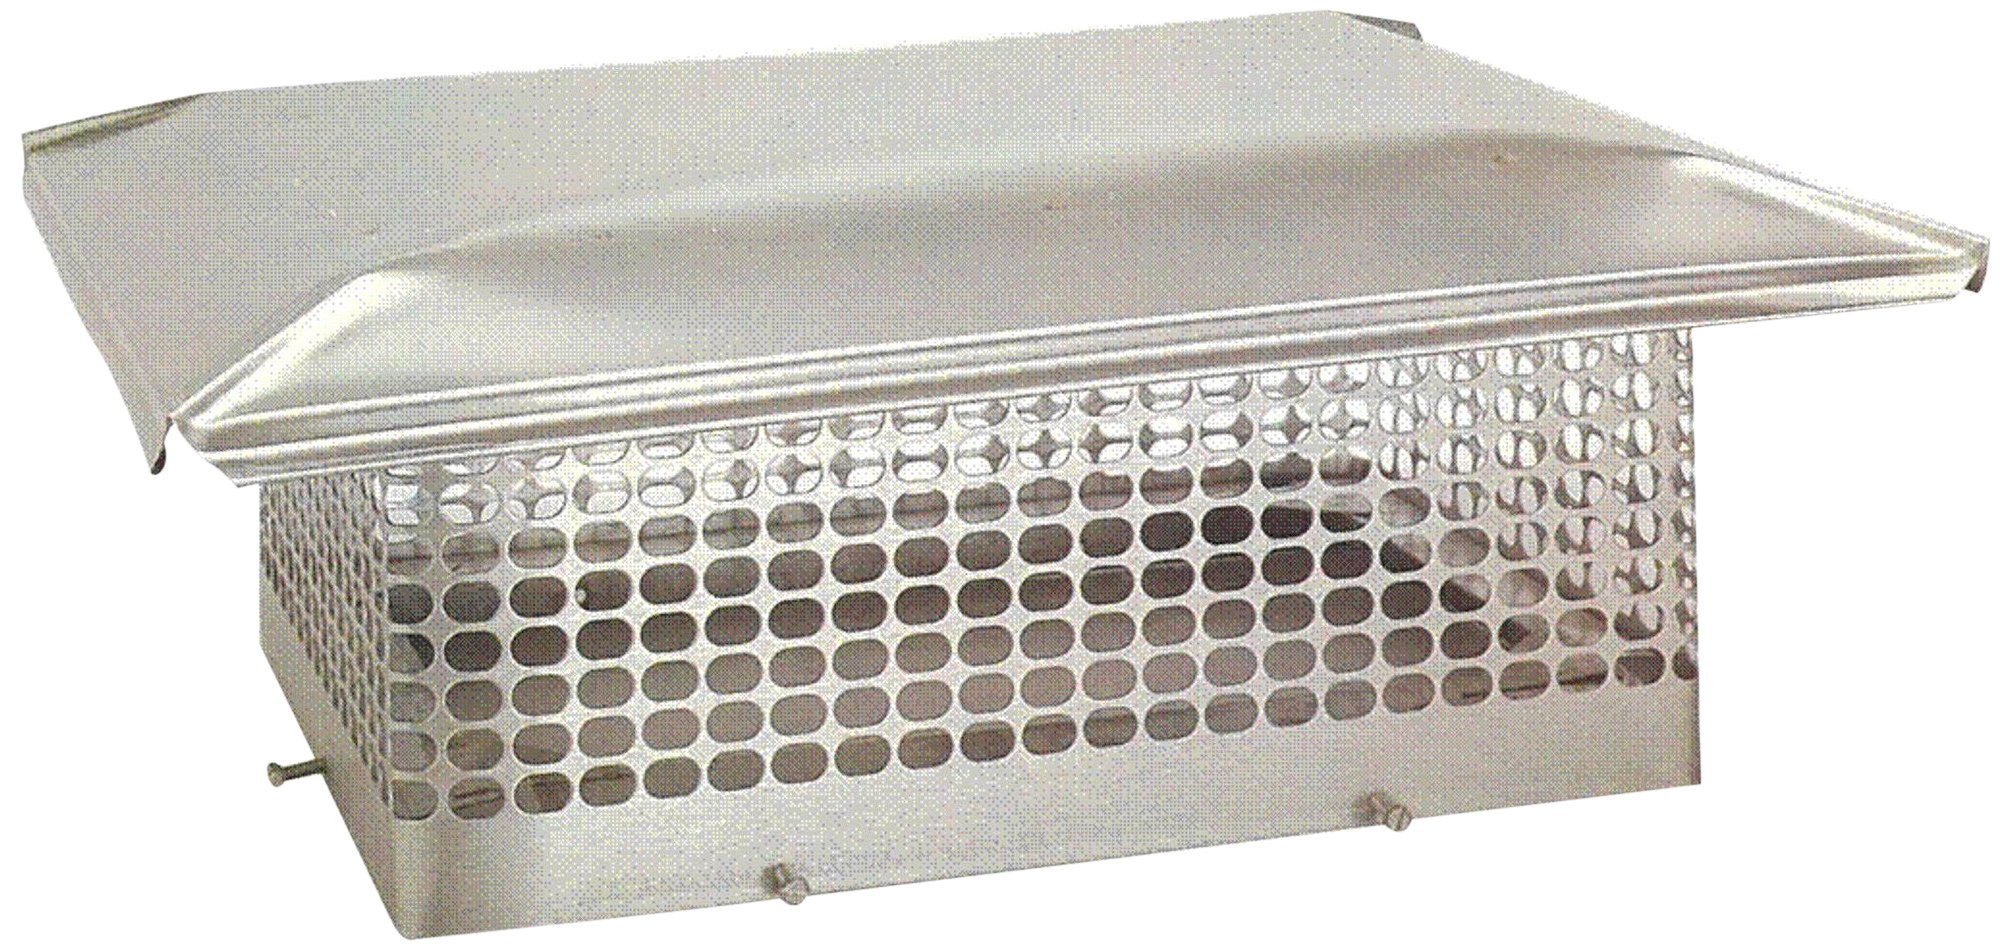 The Forever Cap CCSS1721 17 x 21-Inch Stainless Steel 5/8-Inch Spark Arrestor Mesh Chimney Cap by The Forever Cap